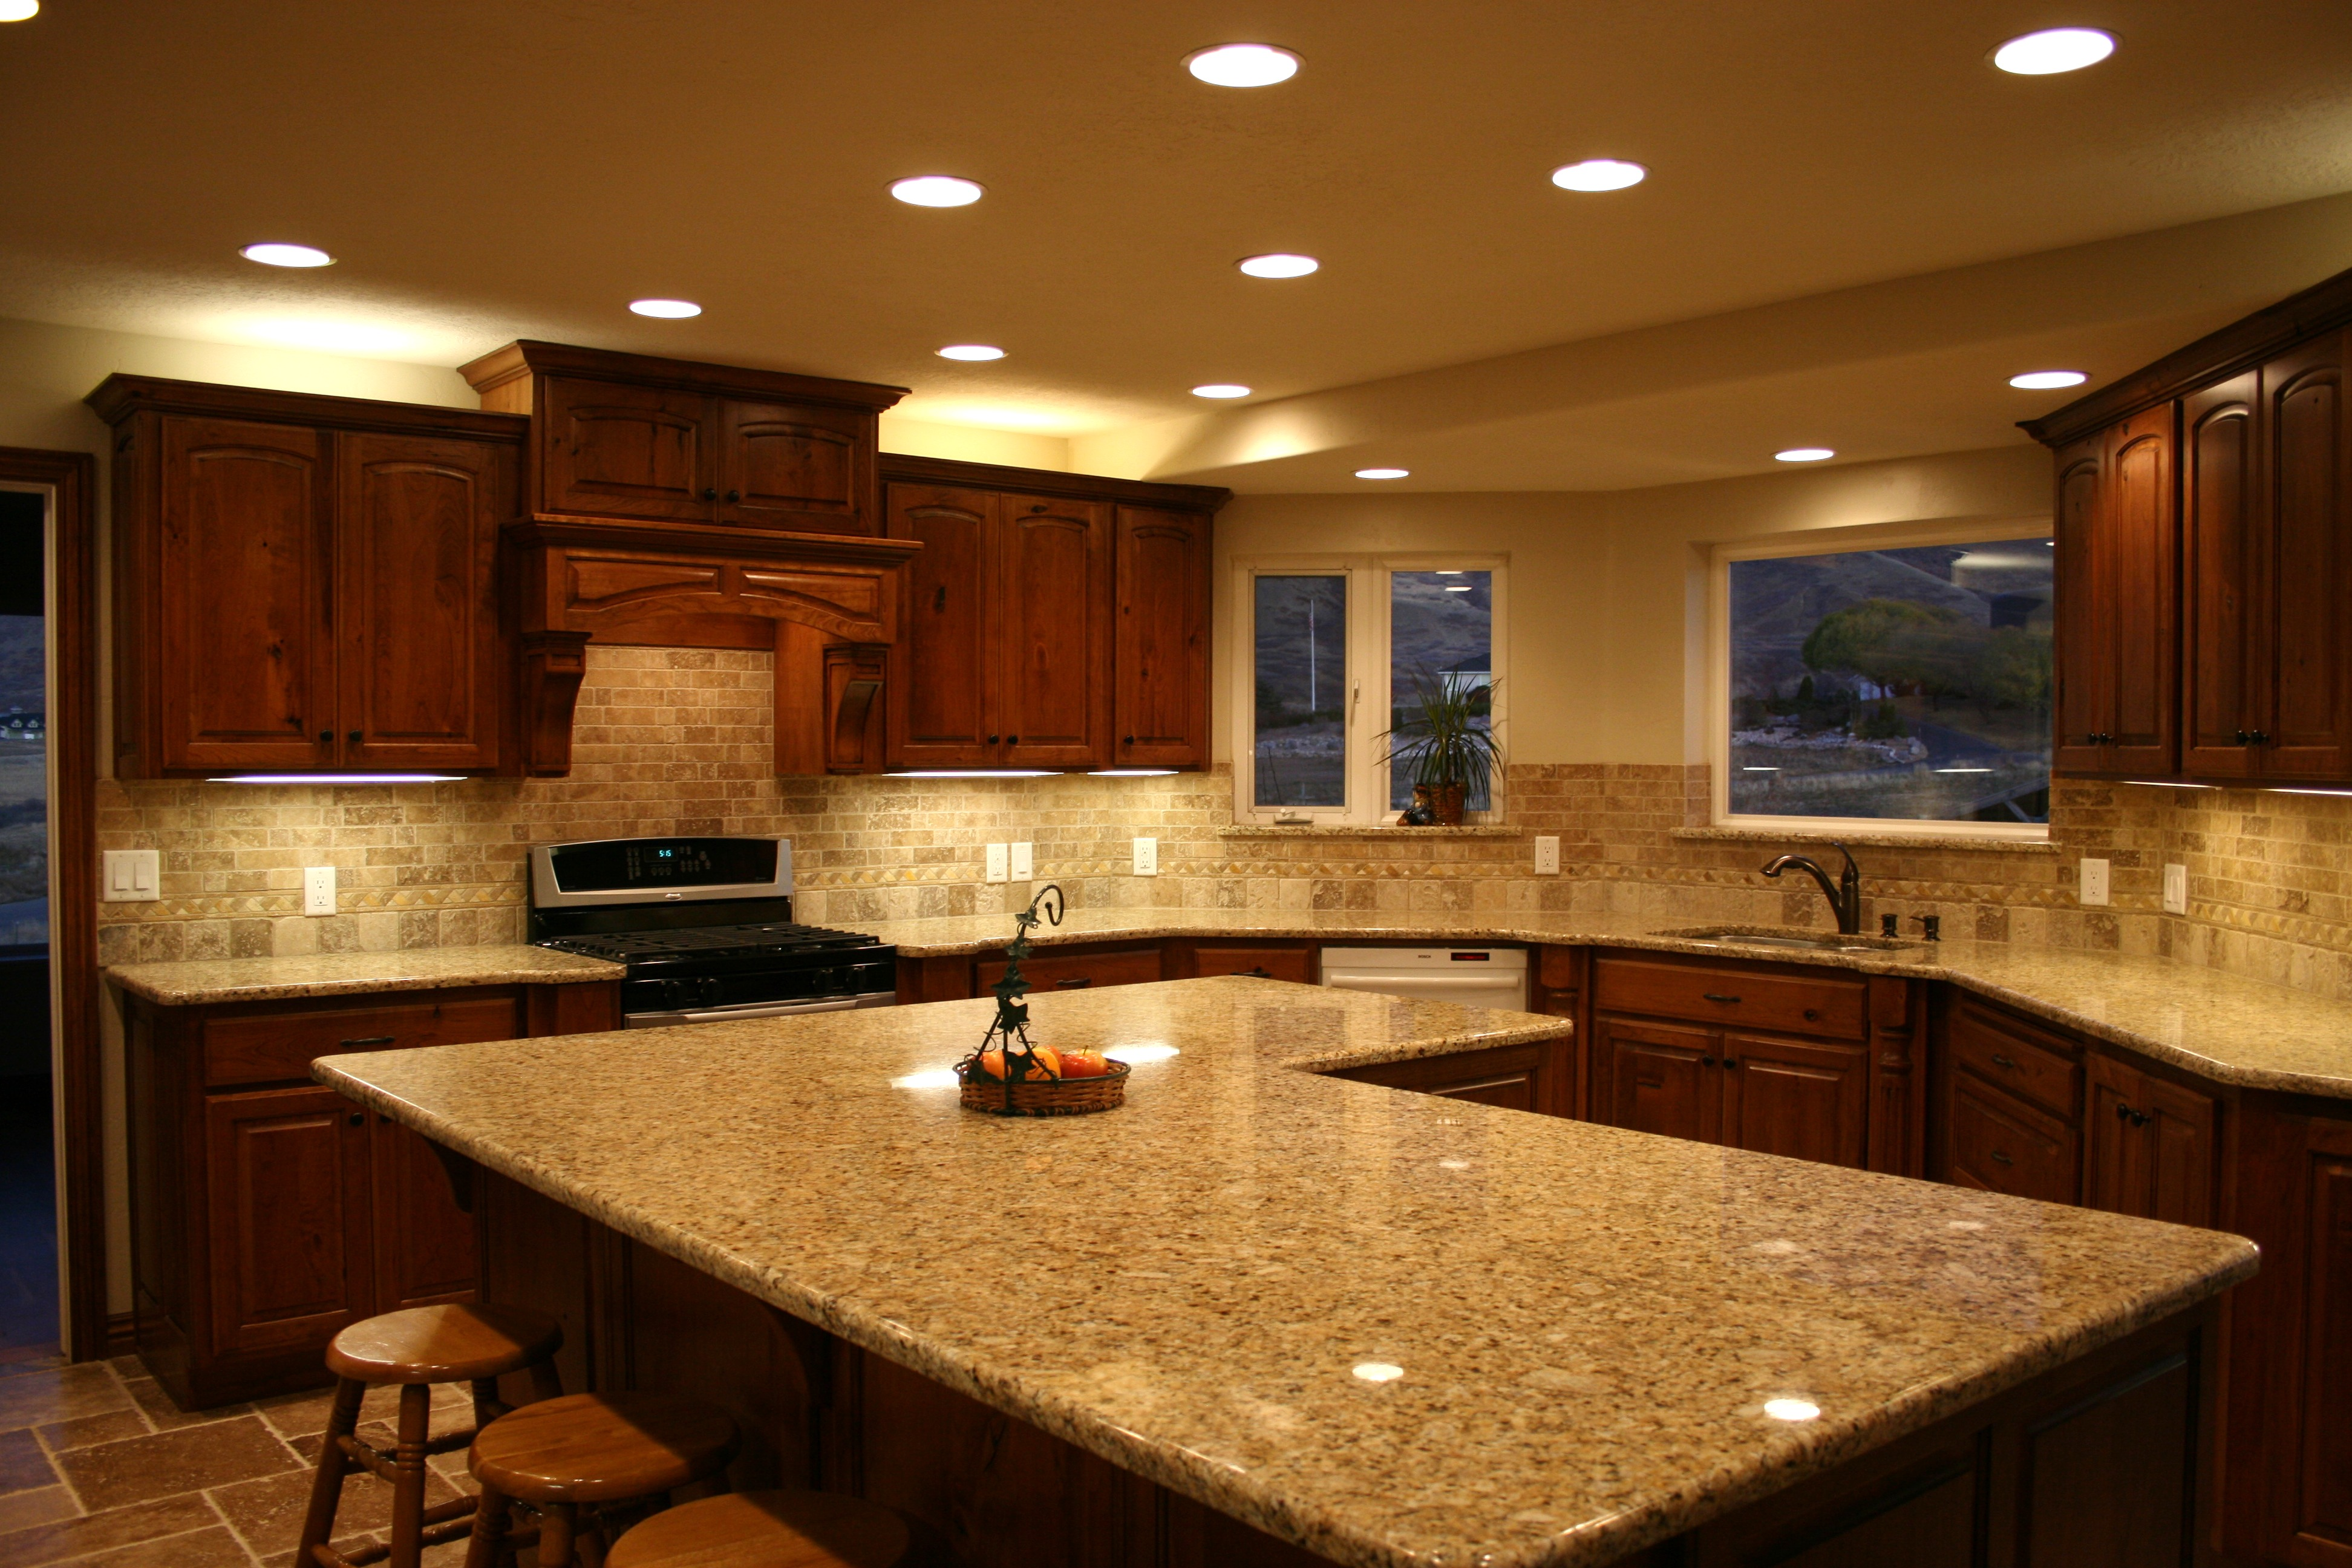 Kitchen Countertops by New Vision marble kitchen countertops